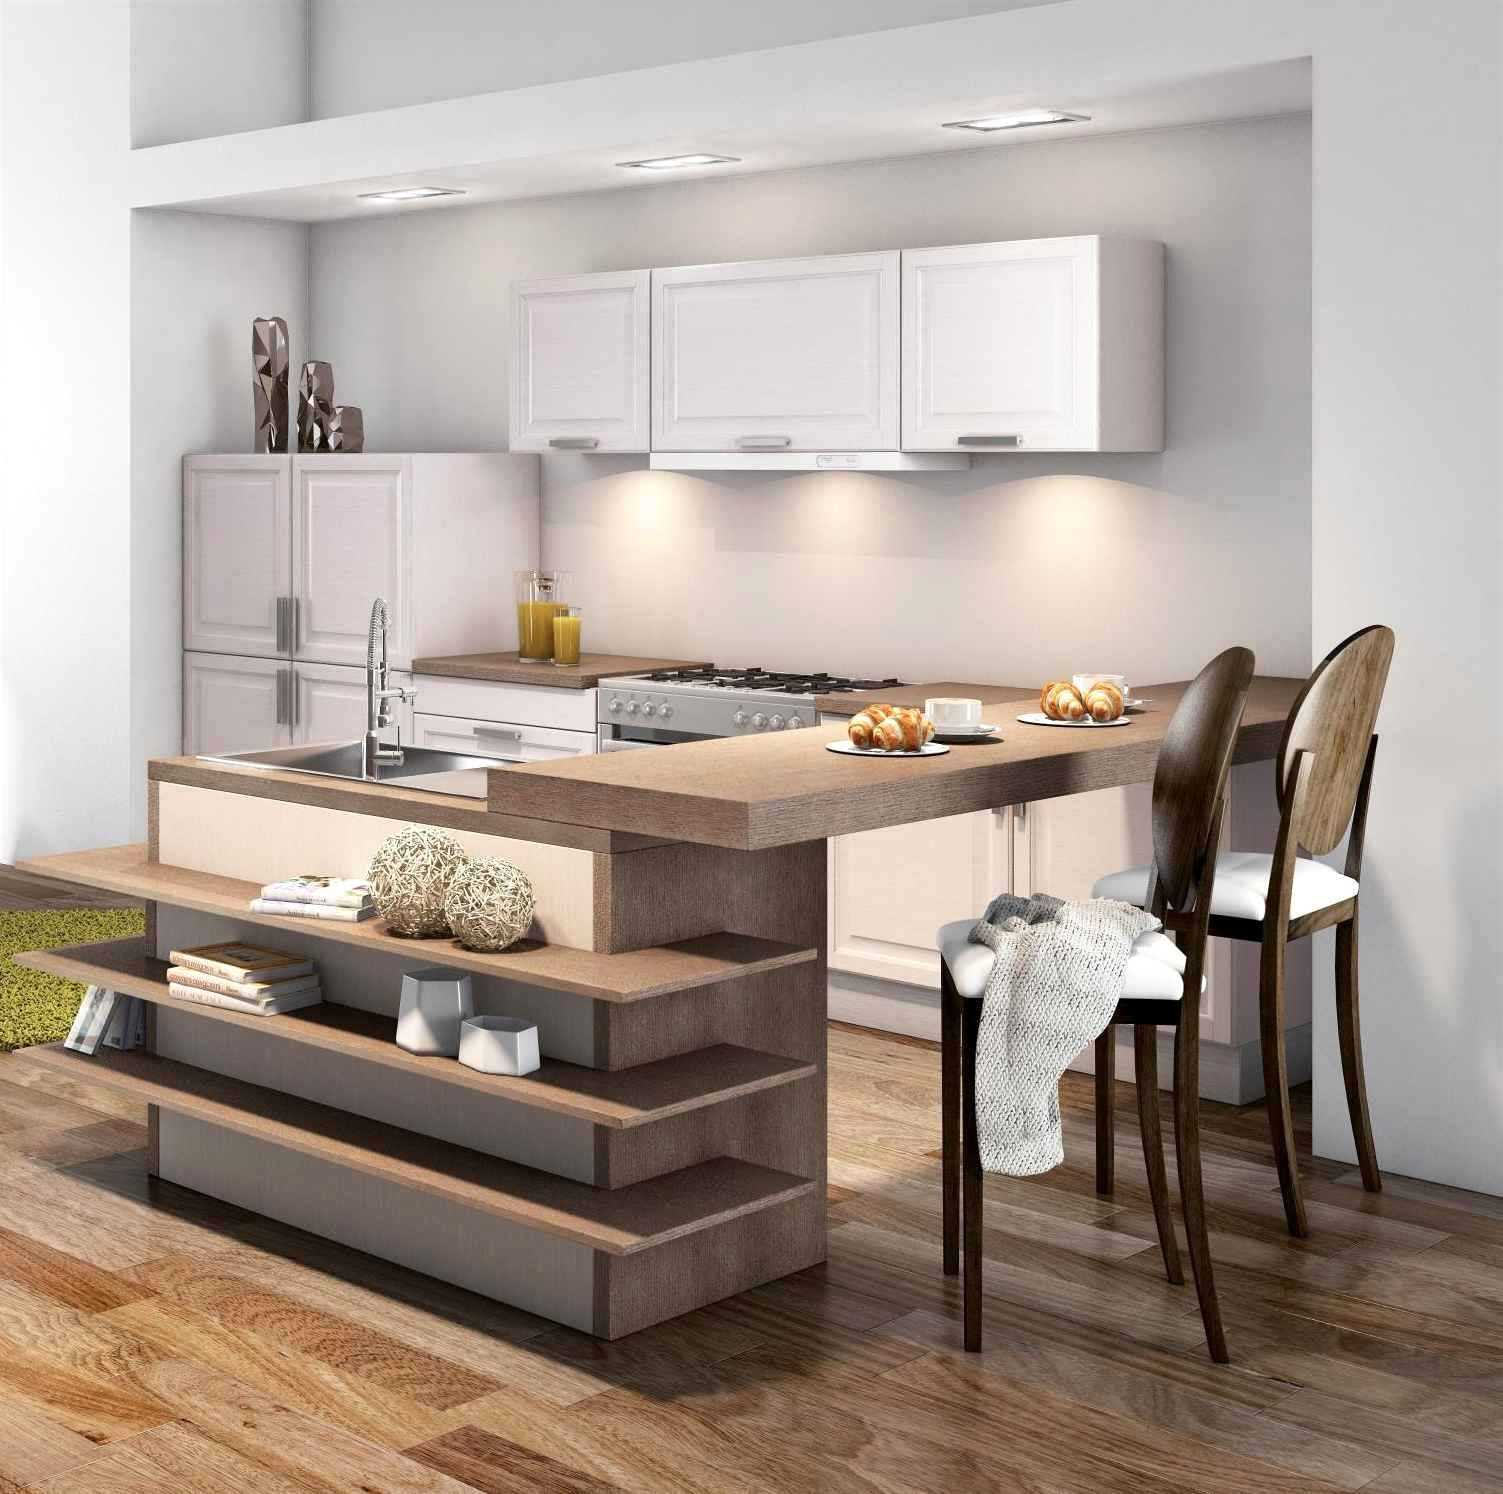 Image Result For Petite Cuisine Moderne 2018 Places To Visit In